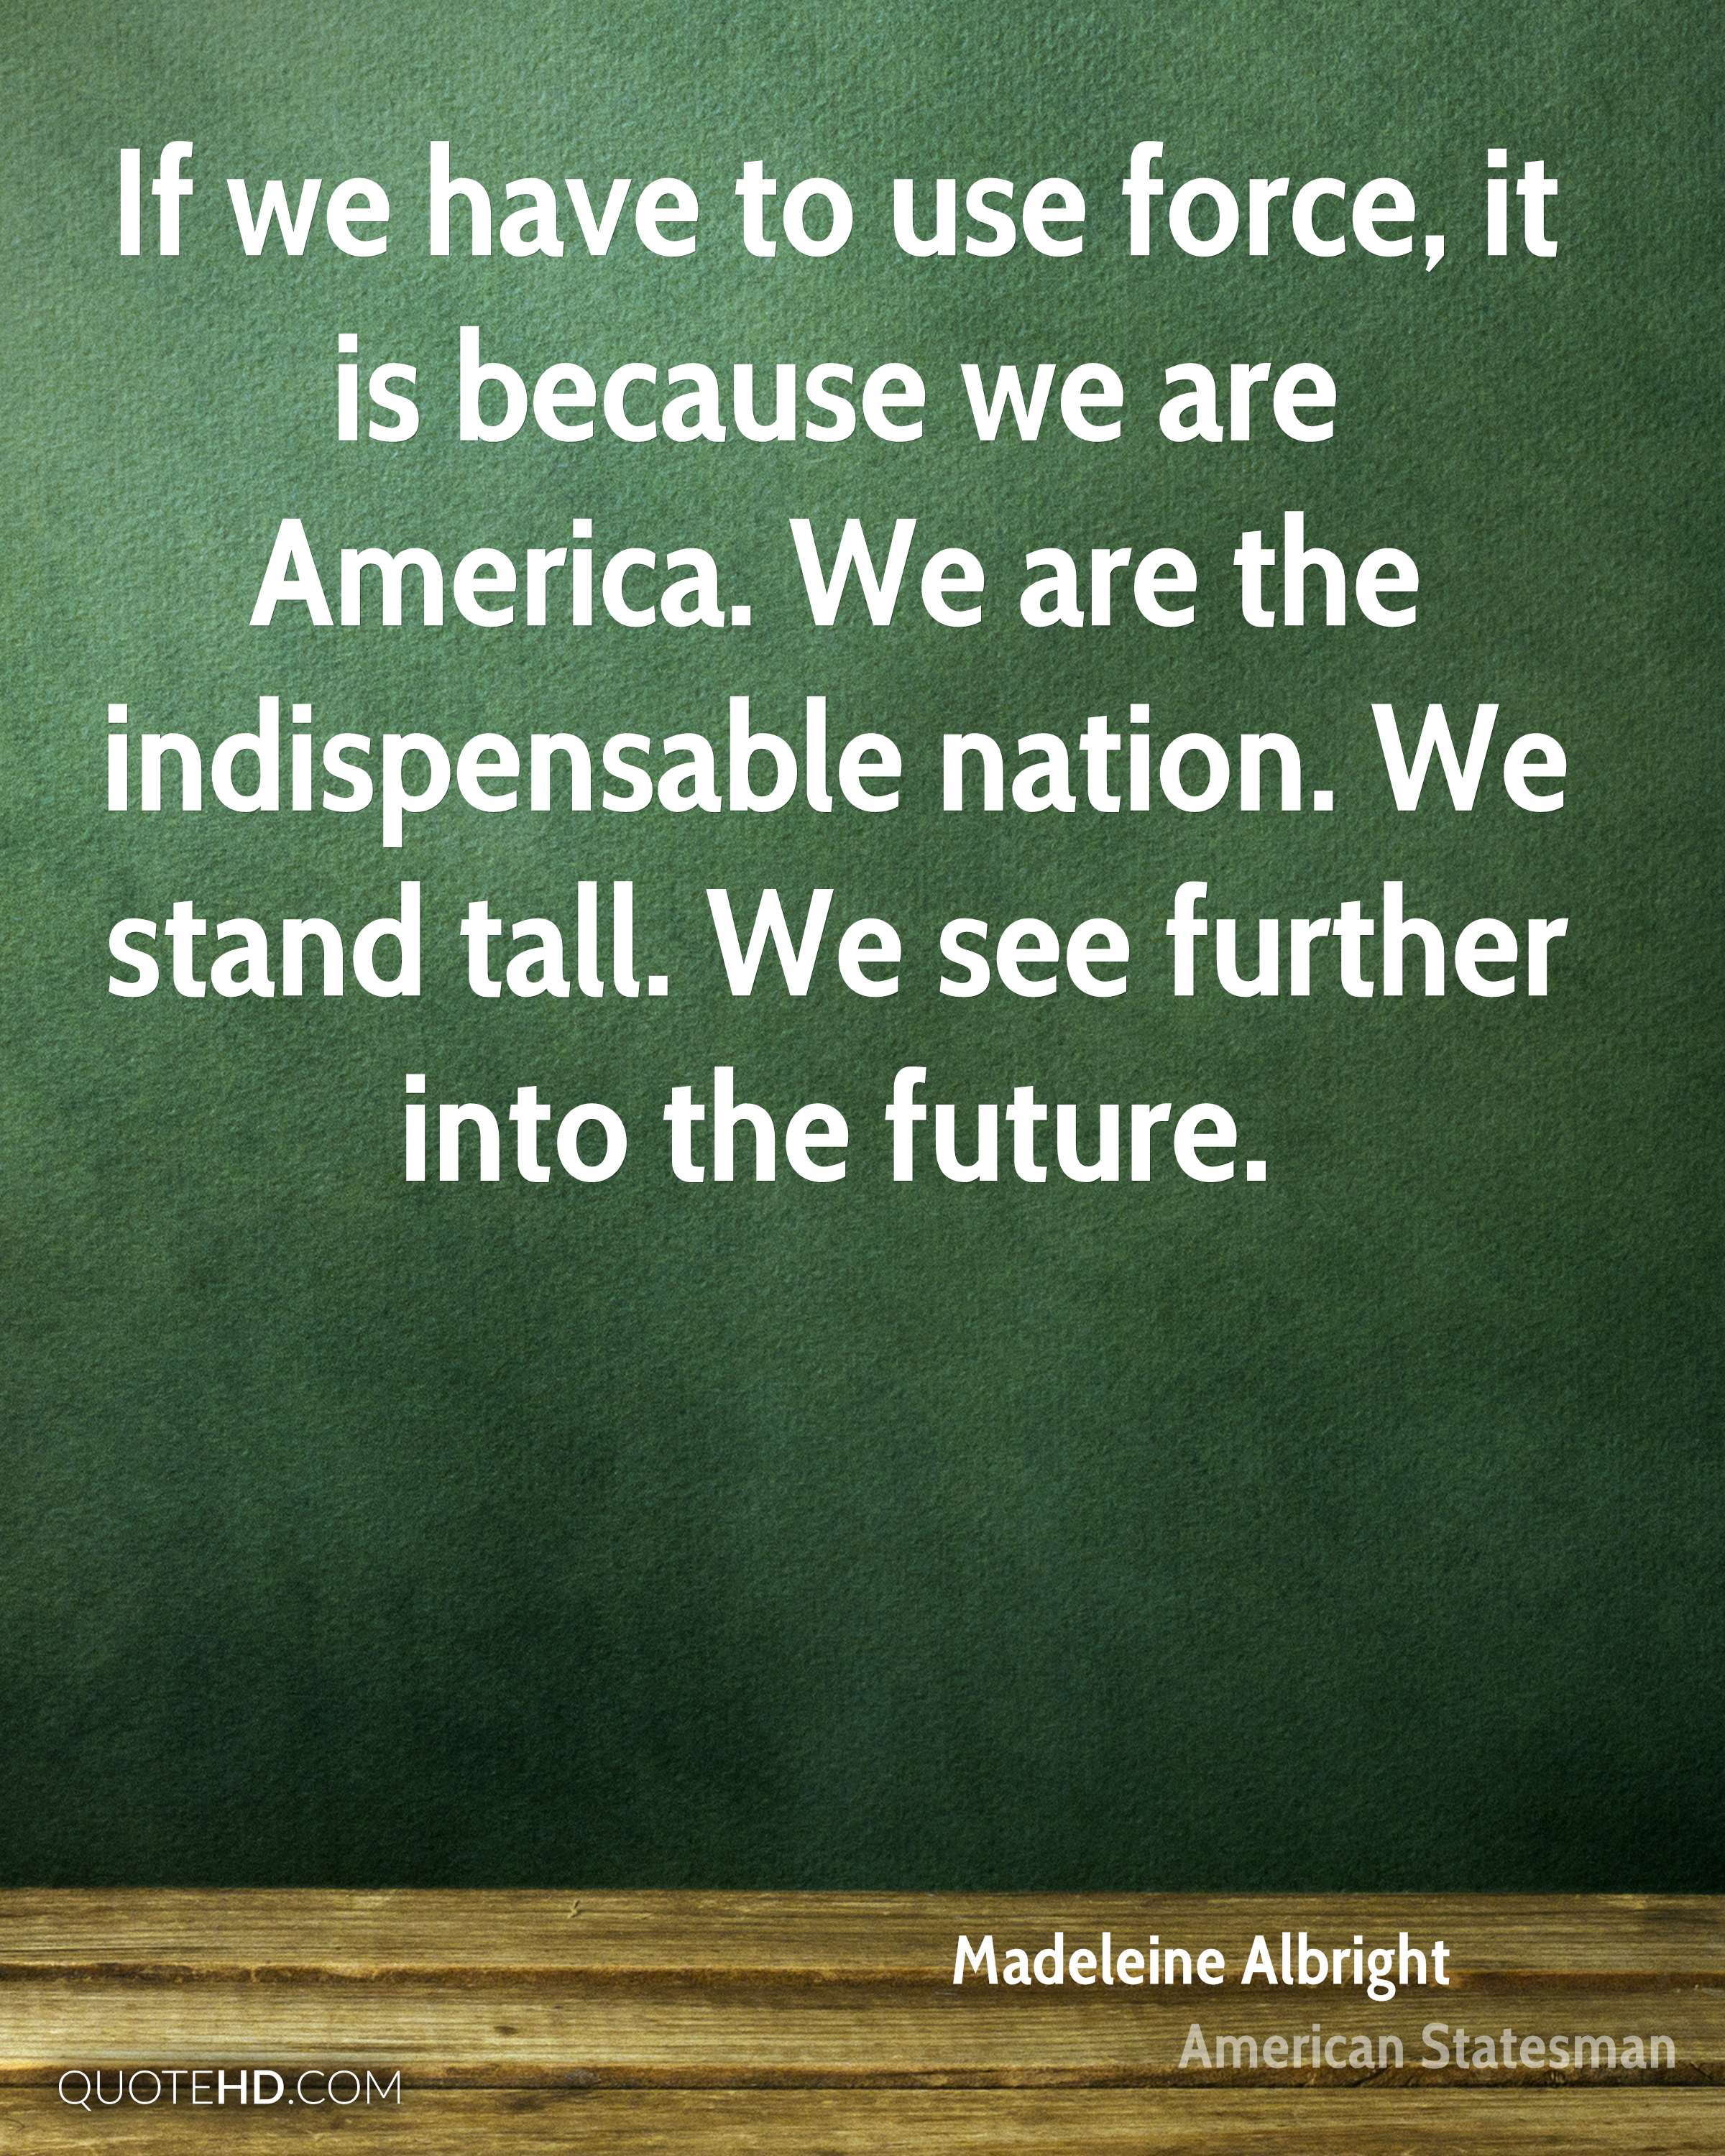 If we have to use force, it is because we are America. We are the indispensable nation. We stand tall. We see further into the future.